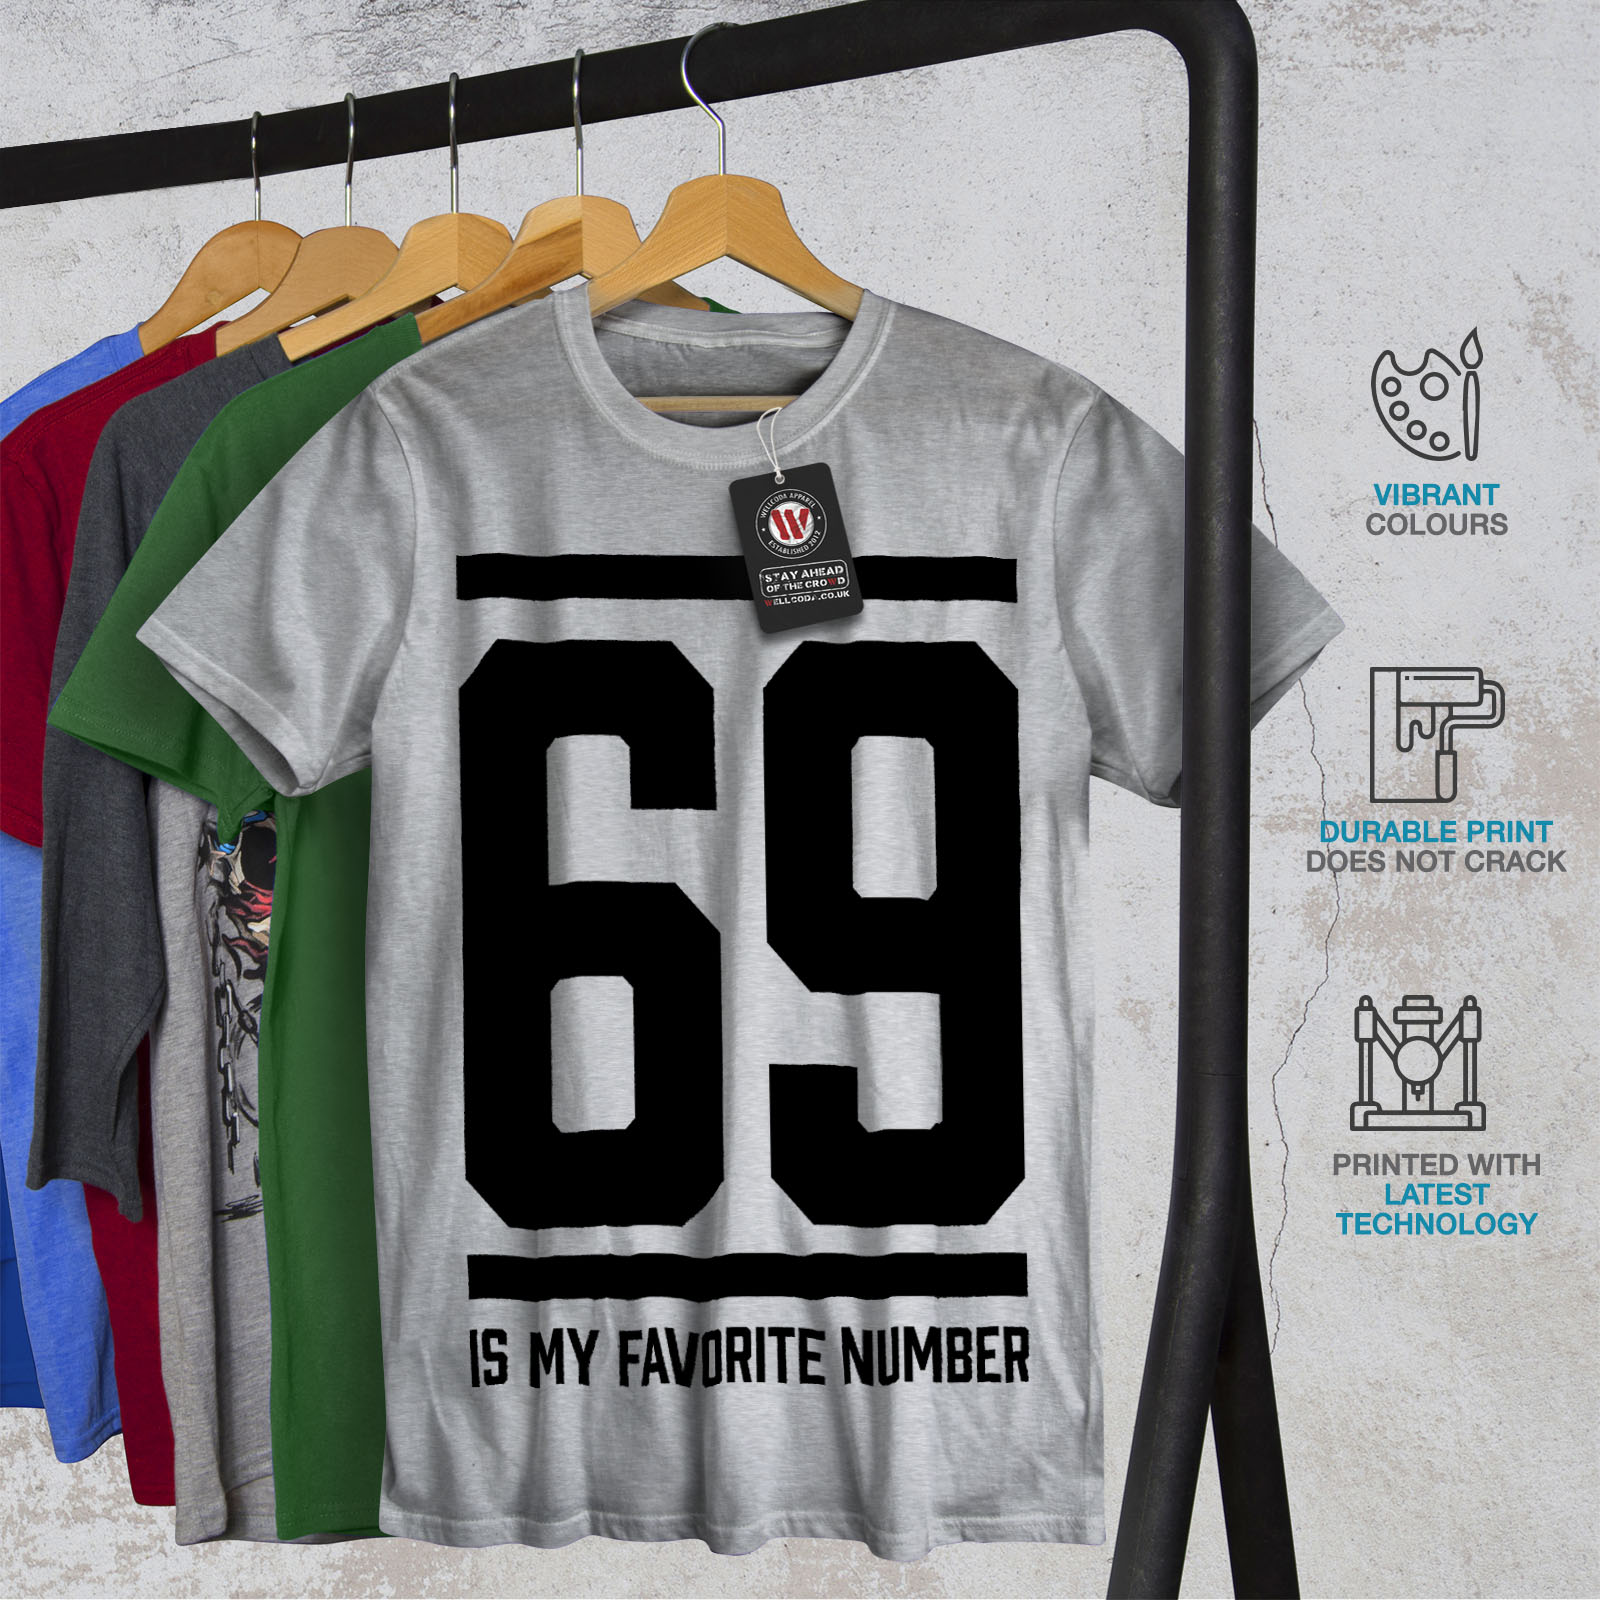 Wellcoda-69-Favorite-Number-Mens-T-shirt-Sports-Graphic-Design-Printed-Tee thumbnail 18